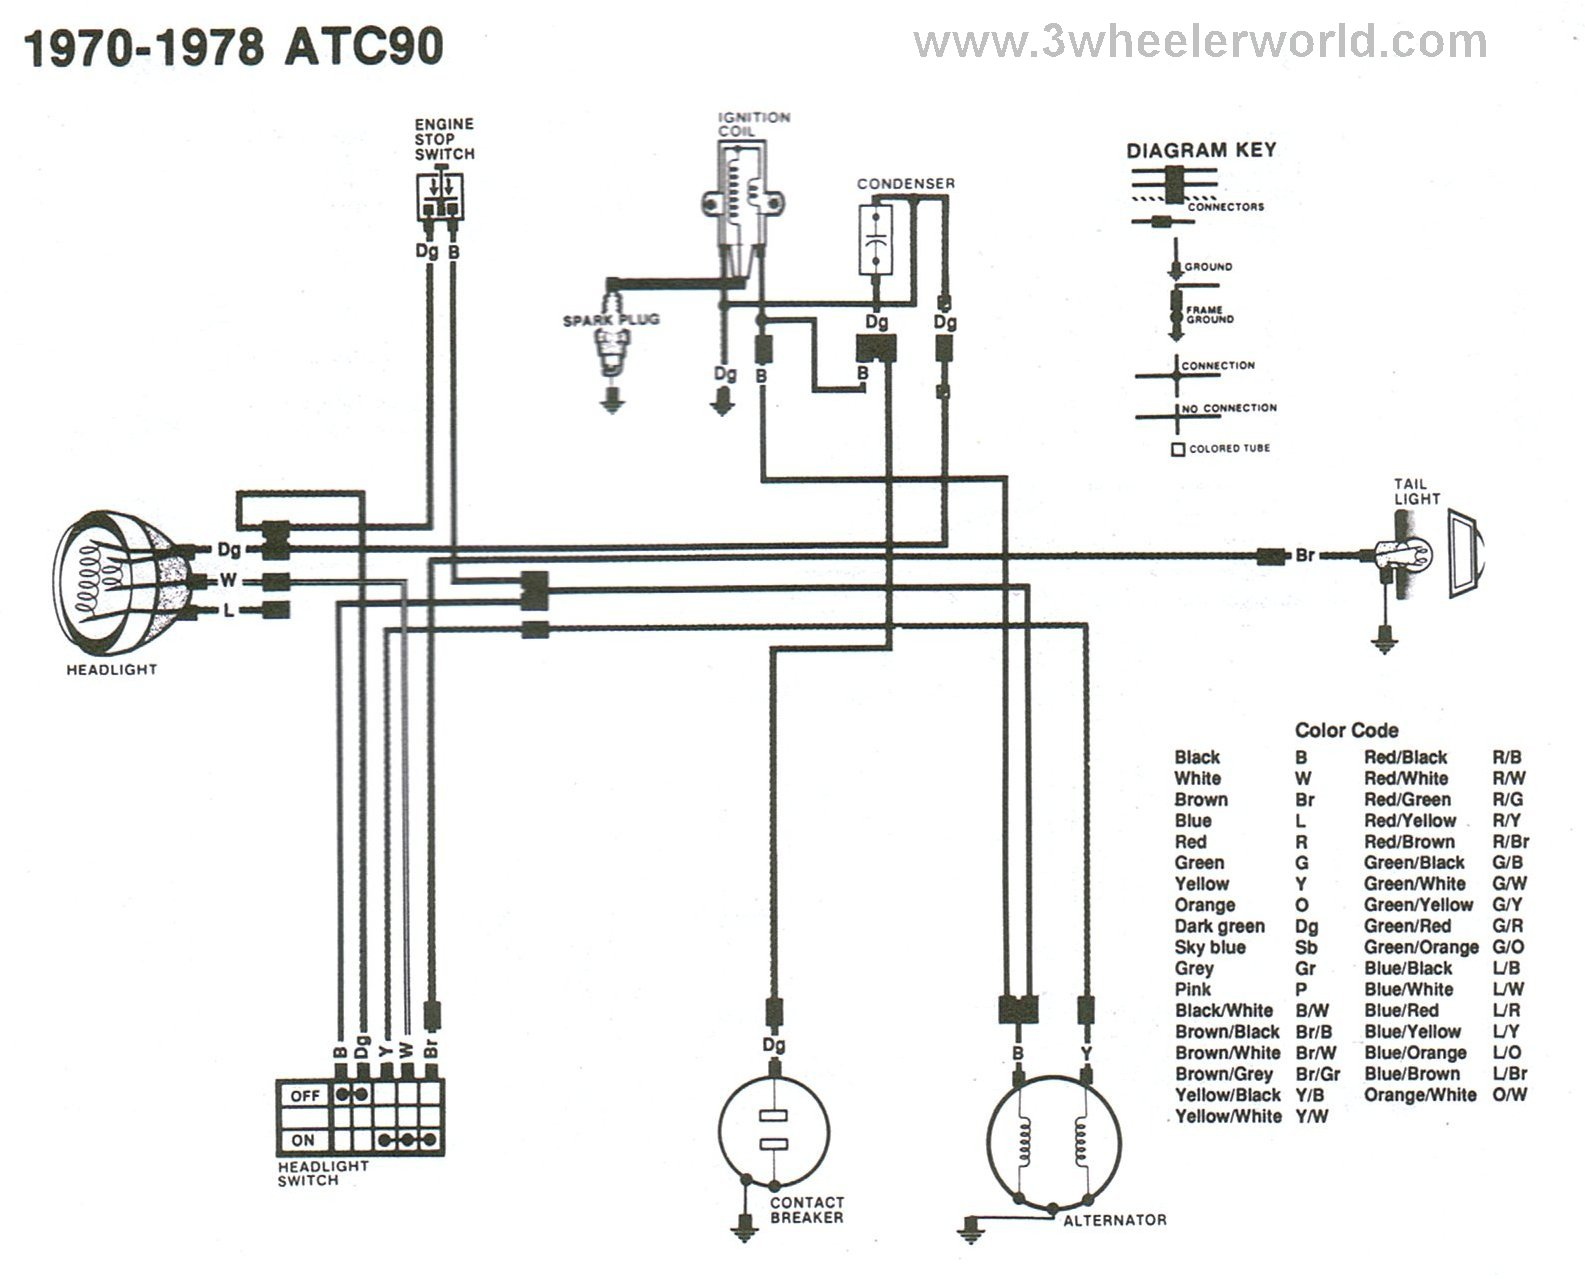 ATC90x70Thru78 3 wheeler world tech help honda wiring diagrams wiring diagram for honda atc 200 at bayanpartner.co